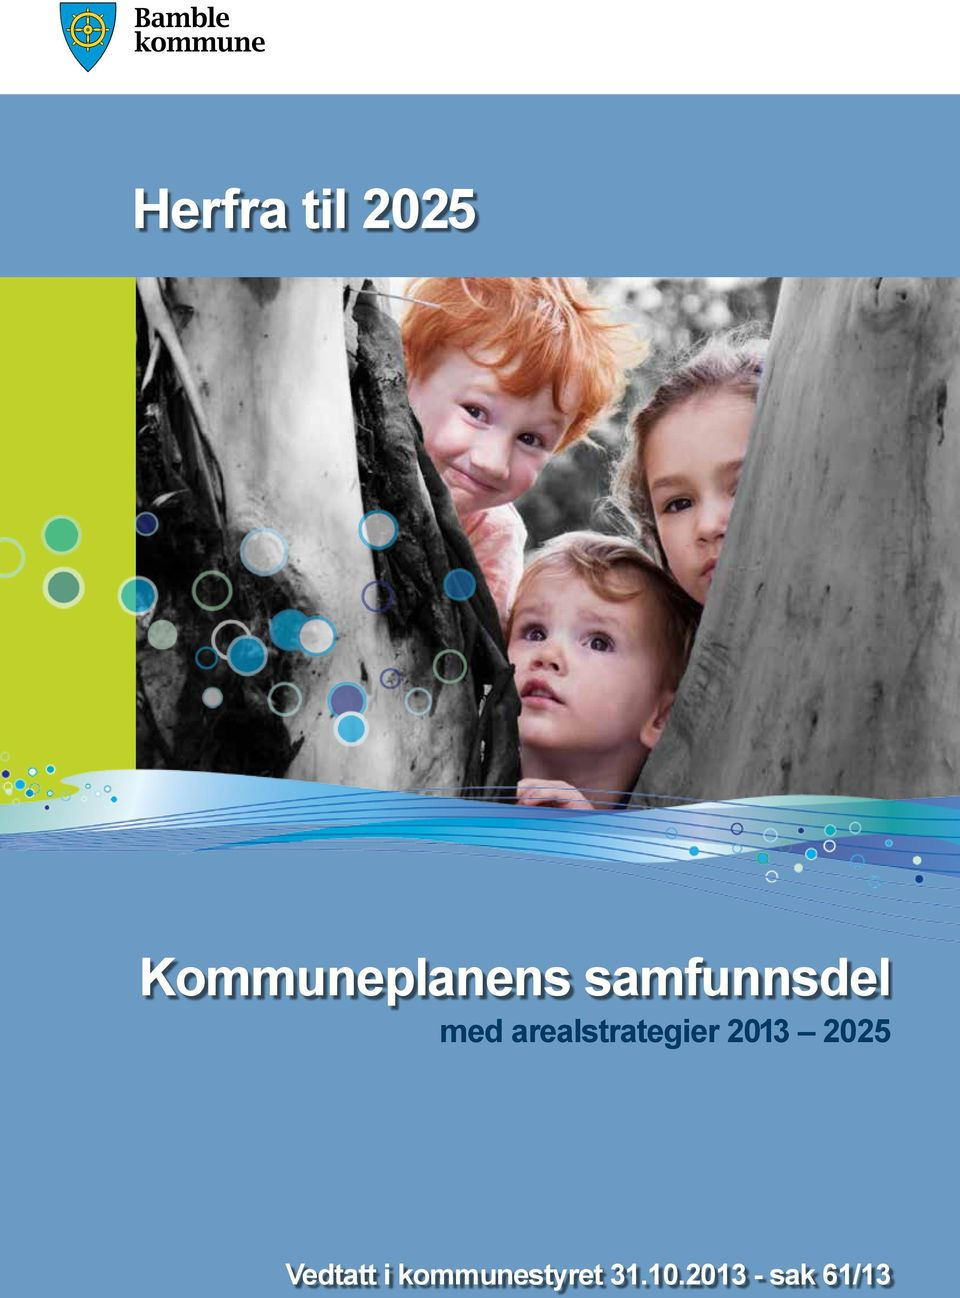 med arealstrategier 2013 2025